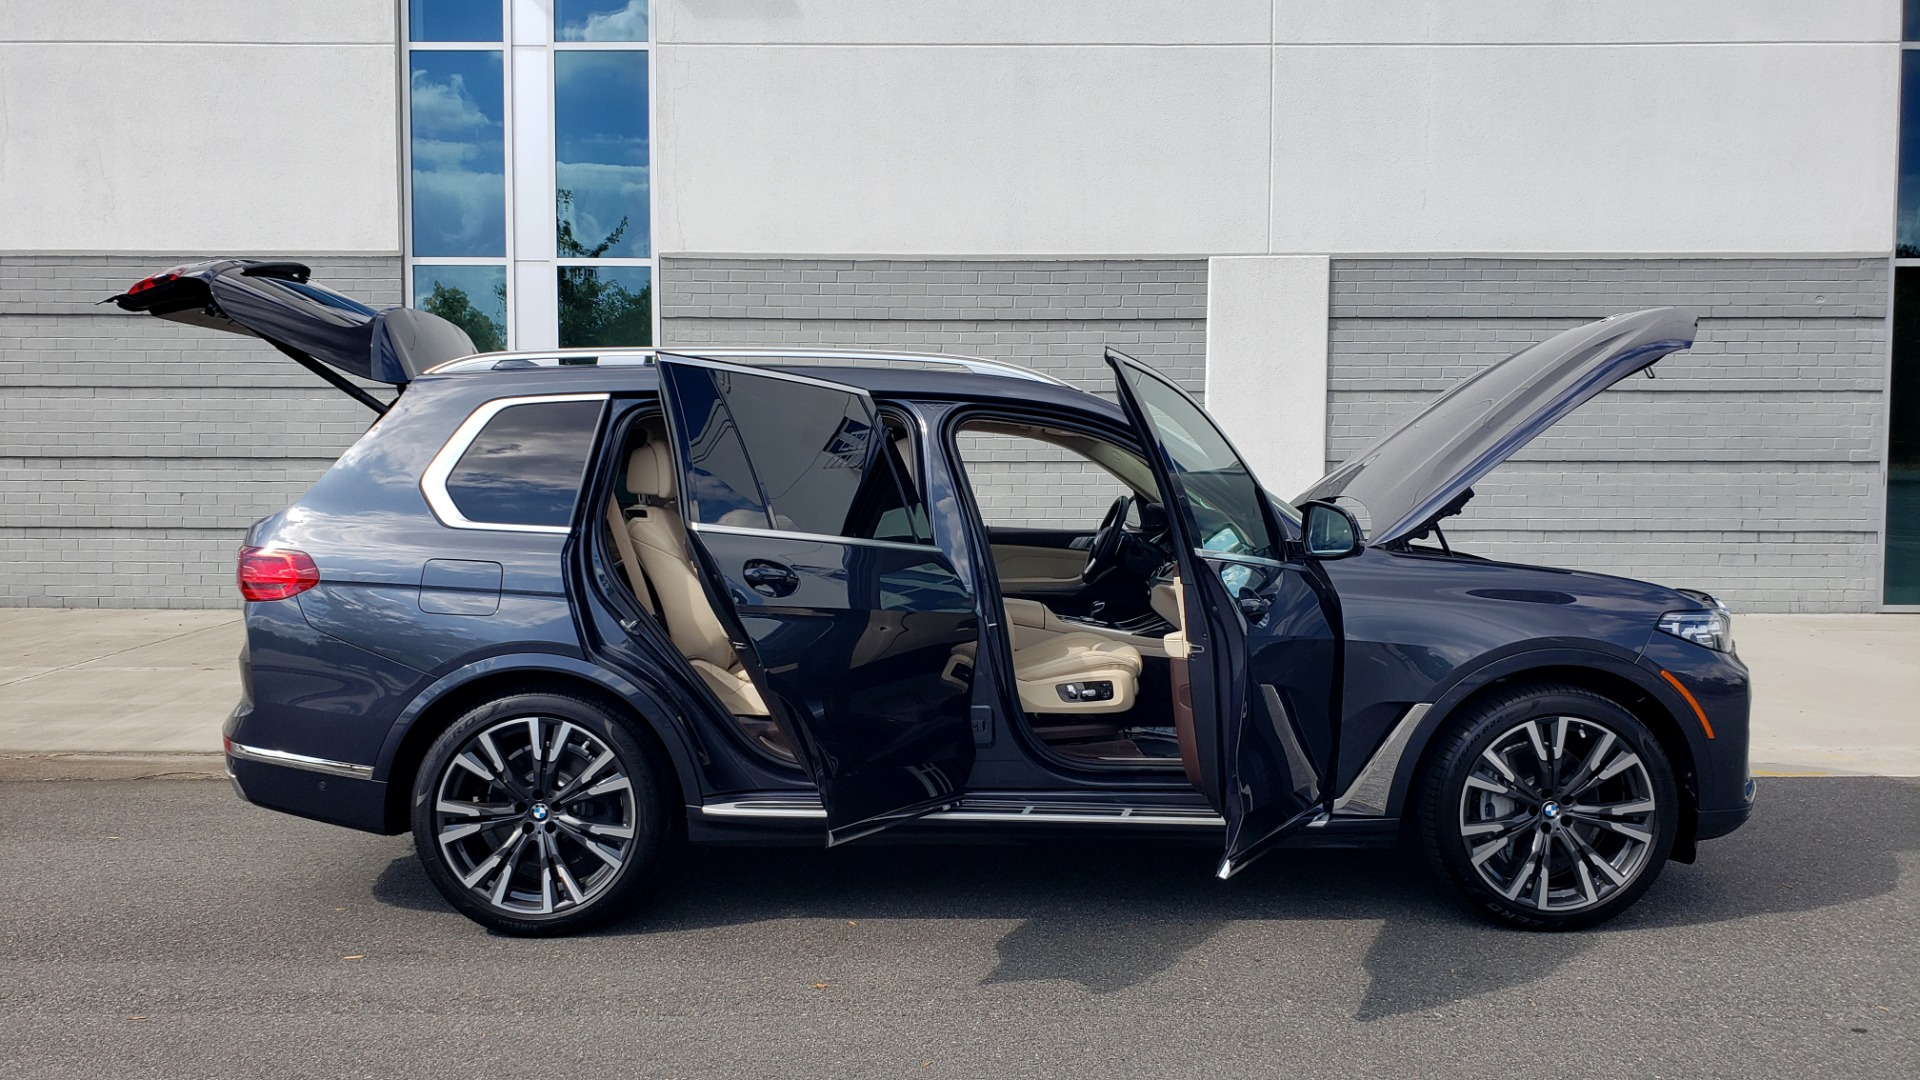 Used 2019 BMW X7 XDRIVE40I PREMIUM / LUXURY / COLD WEATHER / PARK ASST / PANORAMIC SKY / TOW for sale $75,999 at Formula Imports in Charlotte NC 28227 12